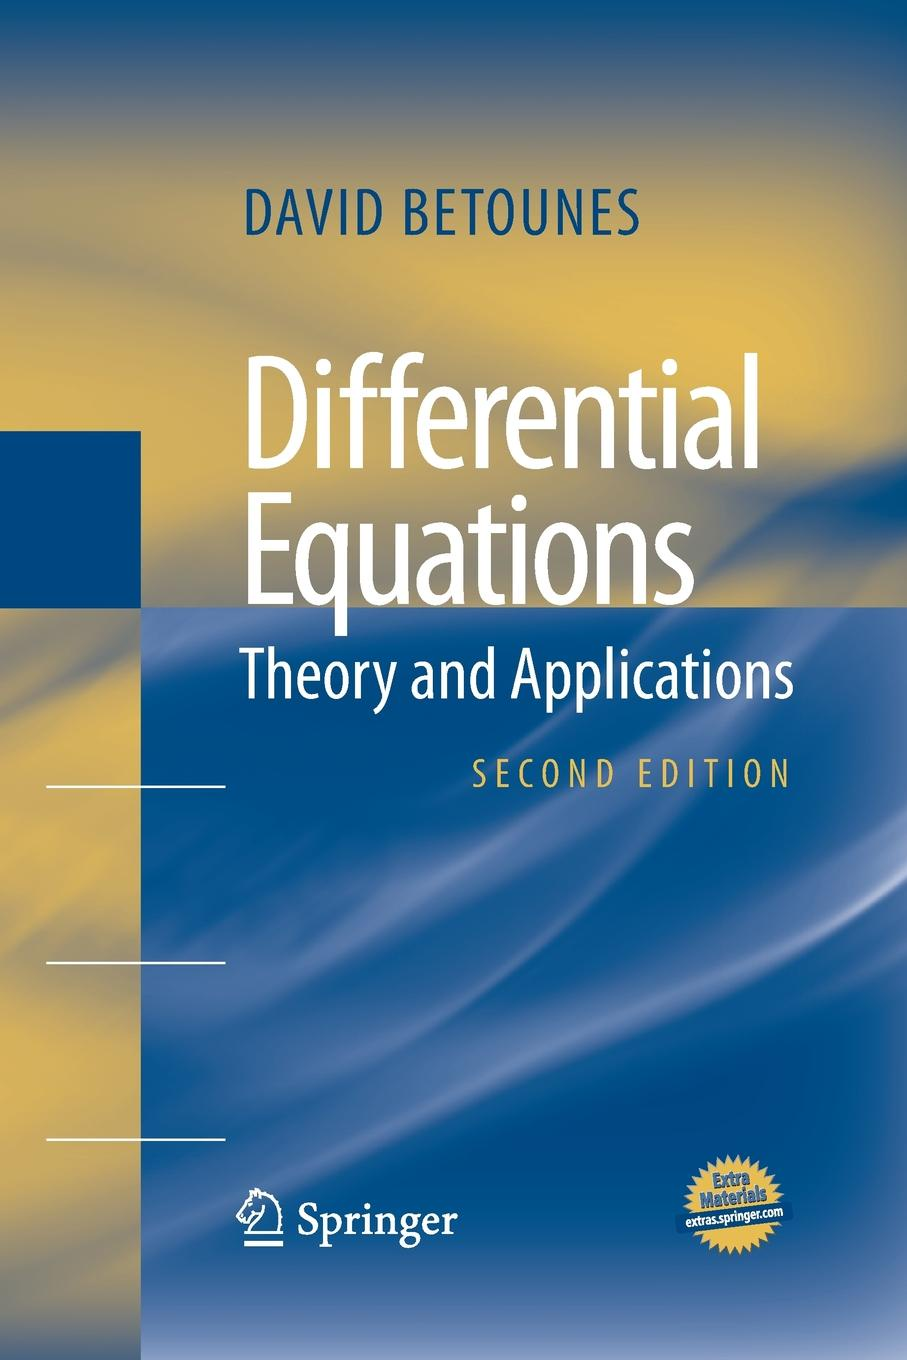 цены на David Betounes Differential Equations. Theory and Applications  в интернет-магазинах